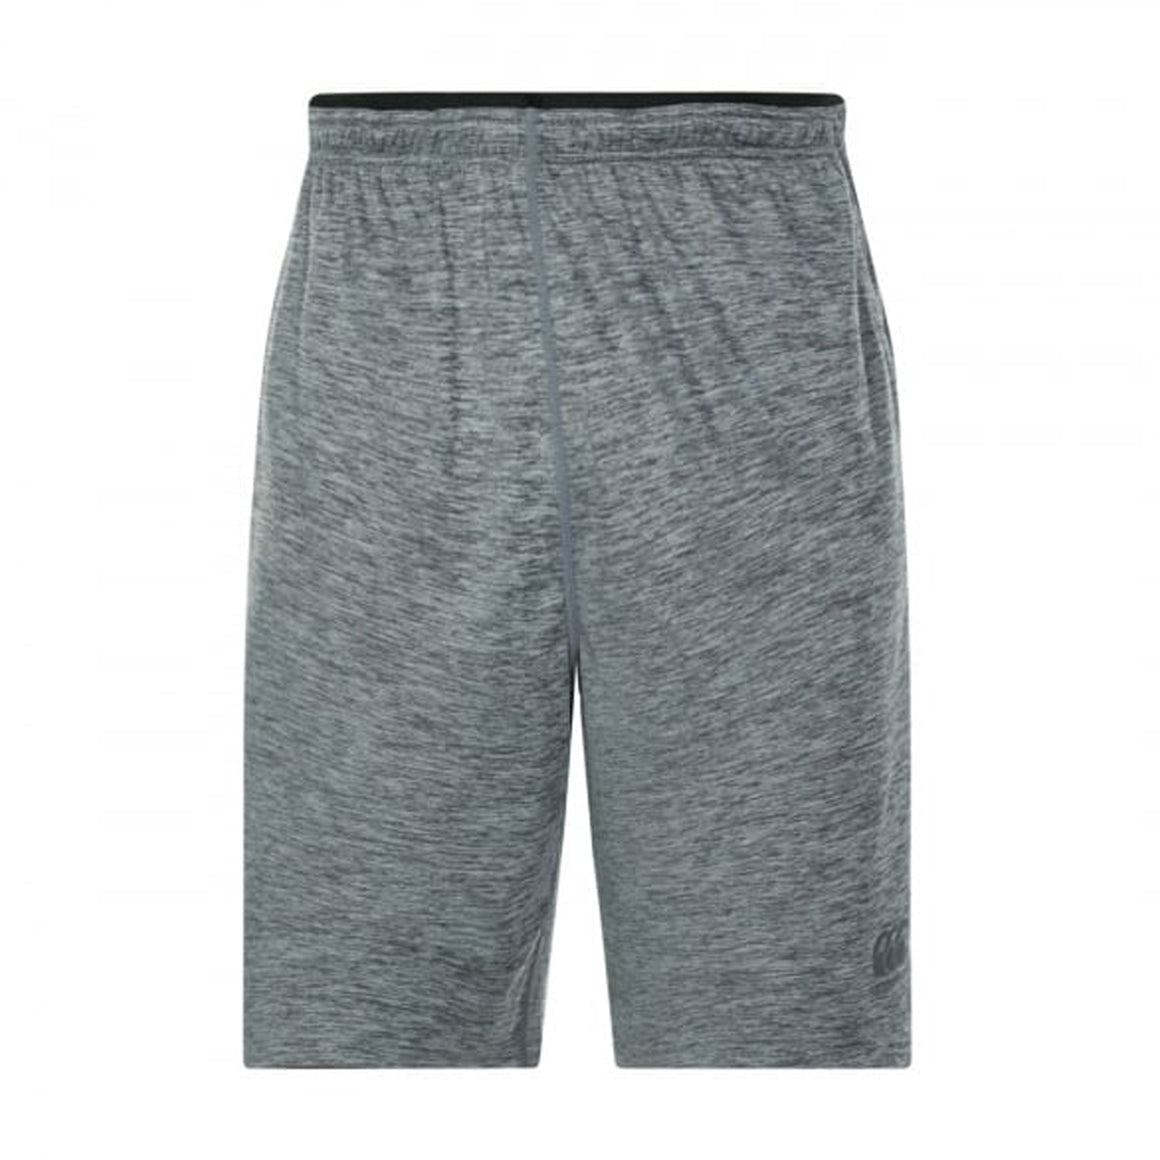 Vapodri Stretch Knit Short for Men in Grey